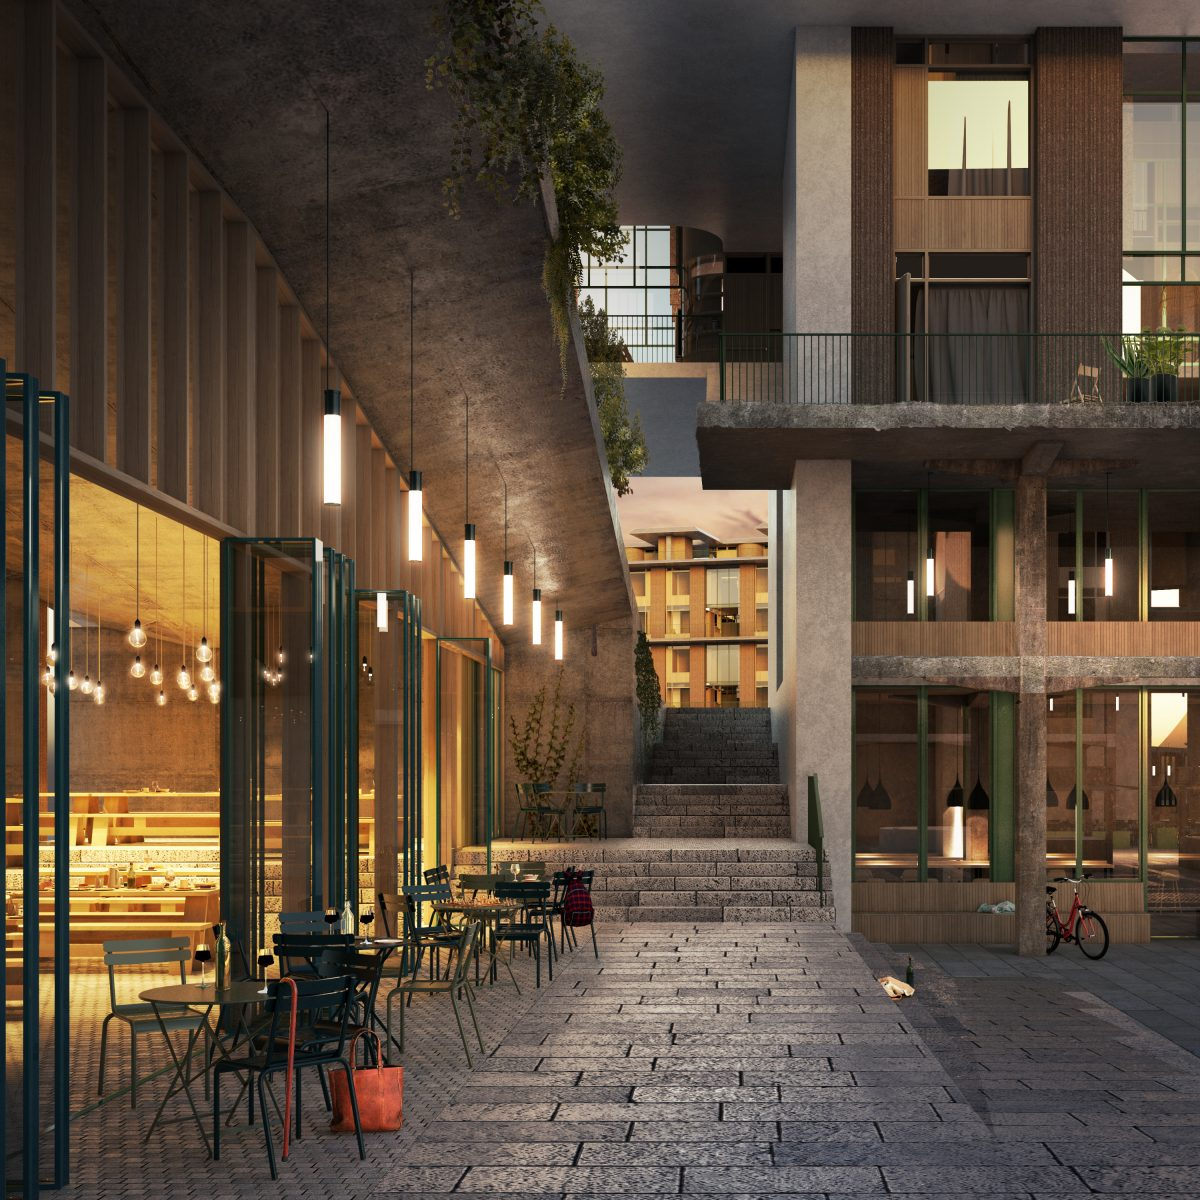 Access into the residents quadrants is through varying underpasses, creating an understanding of where a visitor can and can't visit. South facing steps encourage people to sit late into the evening, creating a vibrant atmosphere.